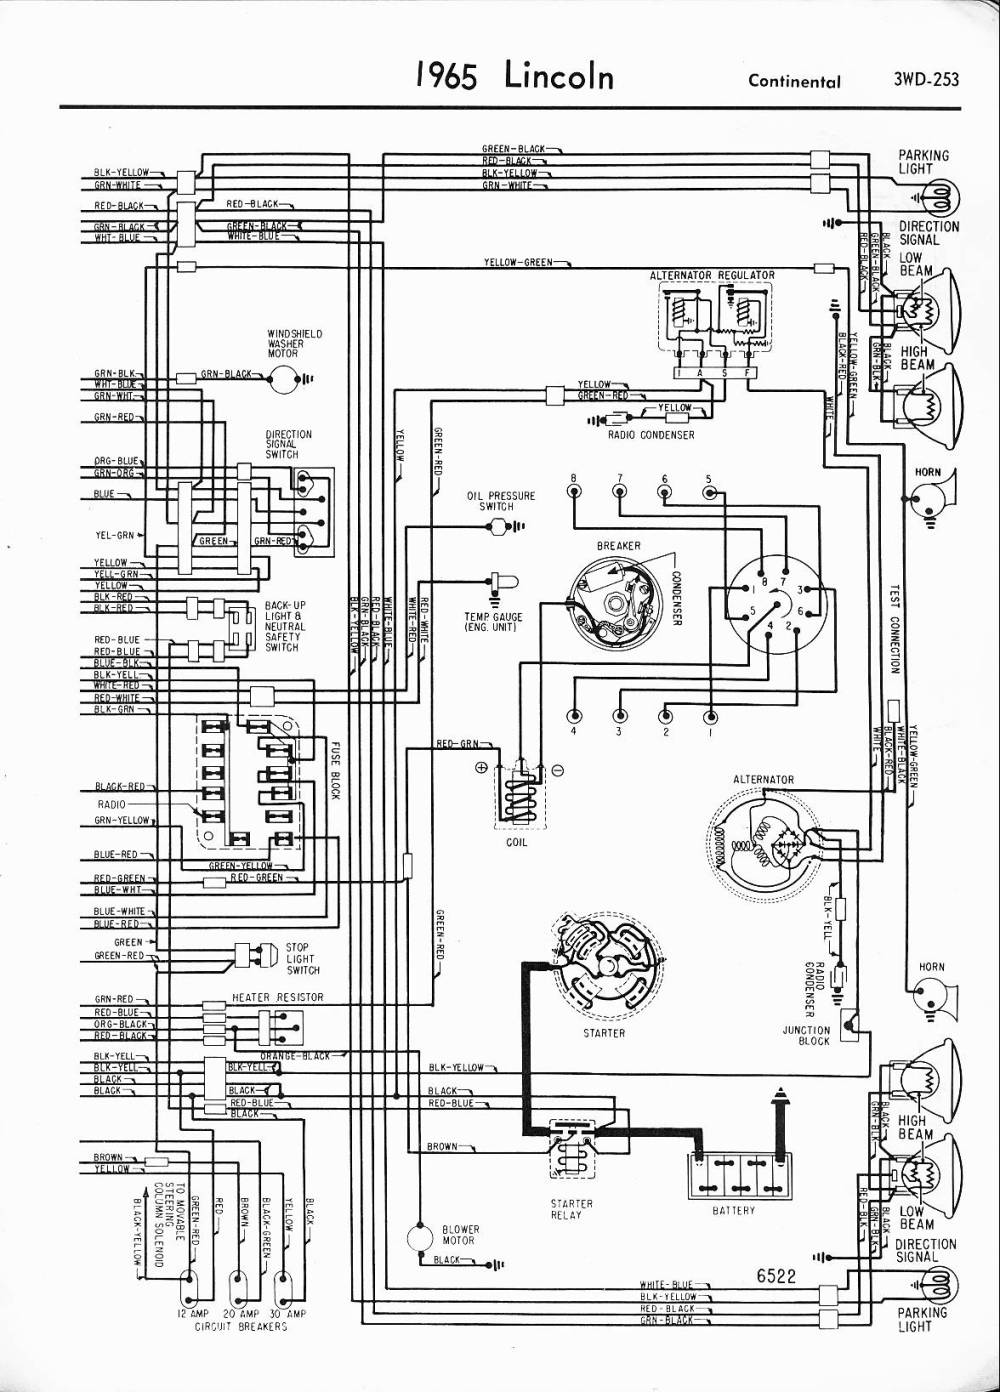 medium resolution of 1994 lincoln wiring diagrams simple wiring diagram 1966 chevrolet impala wiring diagram 1966 lincoln wiring diagram